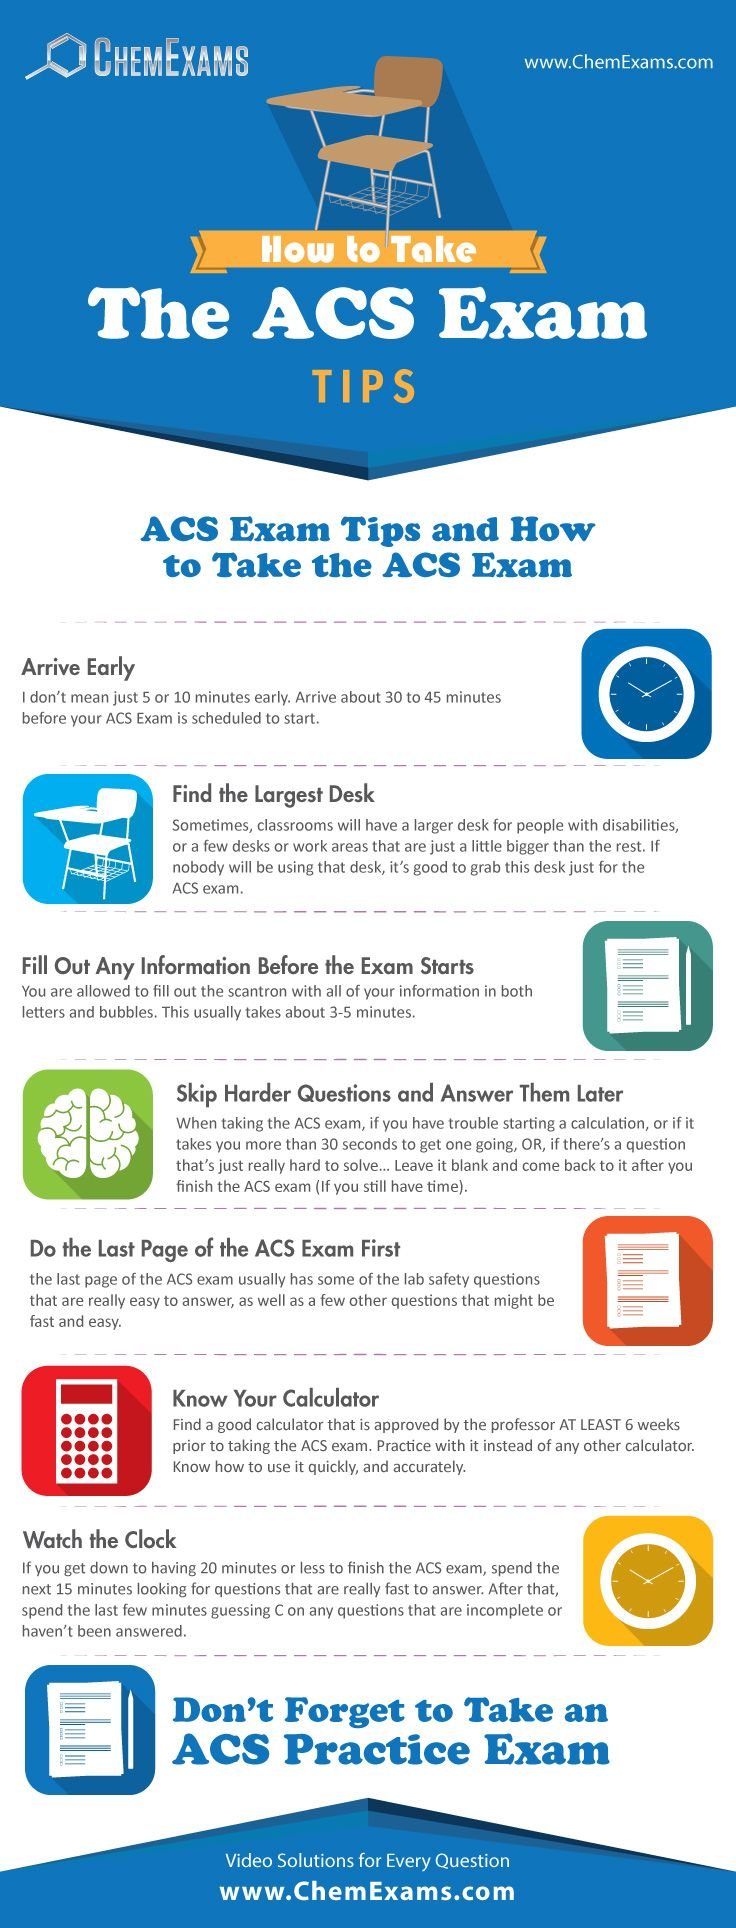 General Chemistry Finals - How to Take the ACS Exam. Study Tips for Chemistry Students.